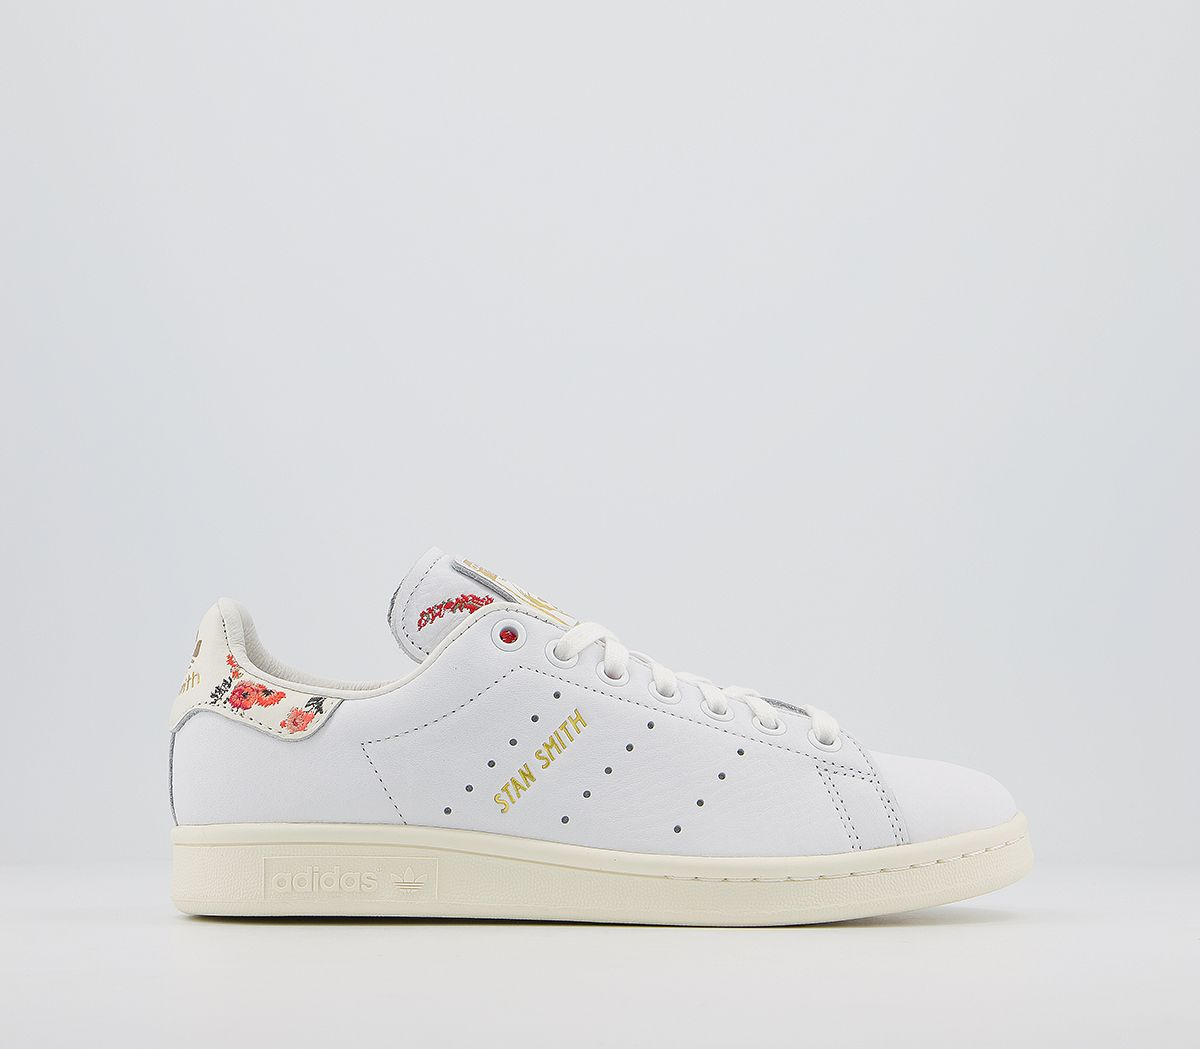 ADIDAS STAN SMITH Casual Mujer Blanco Blanco roto Floral FE4380